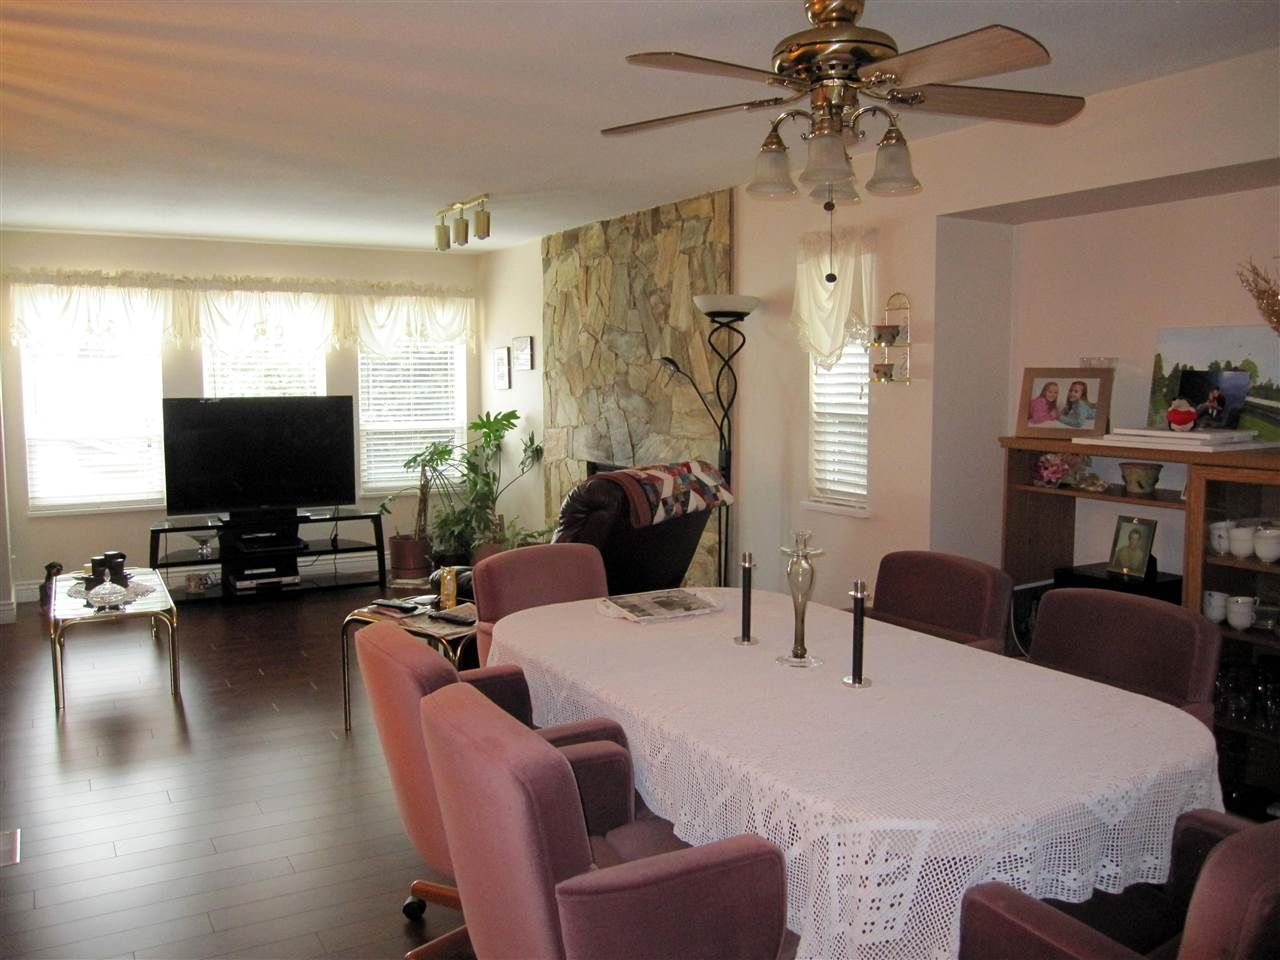 Photo 3: Photos: 23209 123 Avenue in Maple Ridge: East Central House for sale : MLS®# R2049127